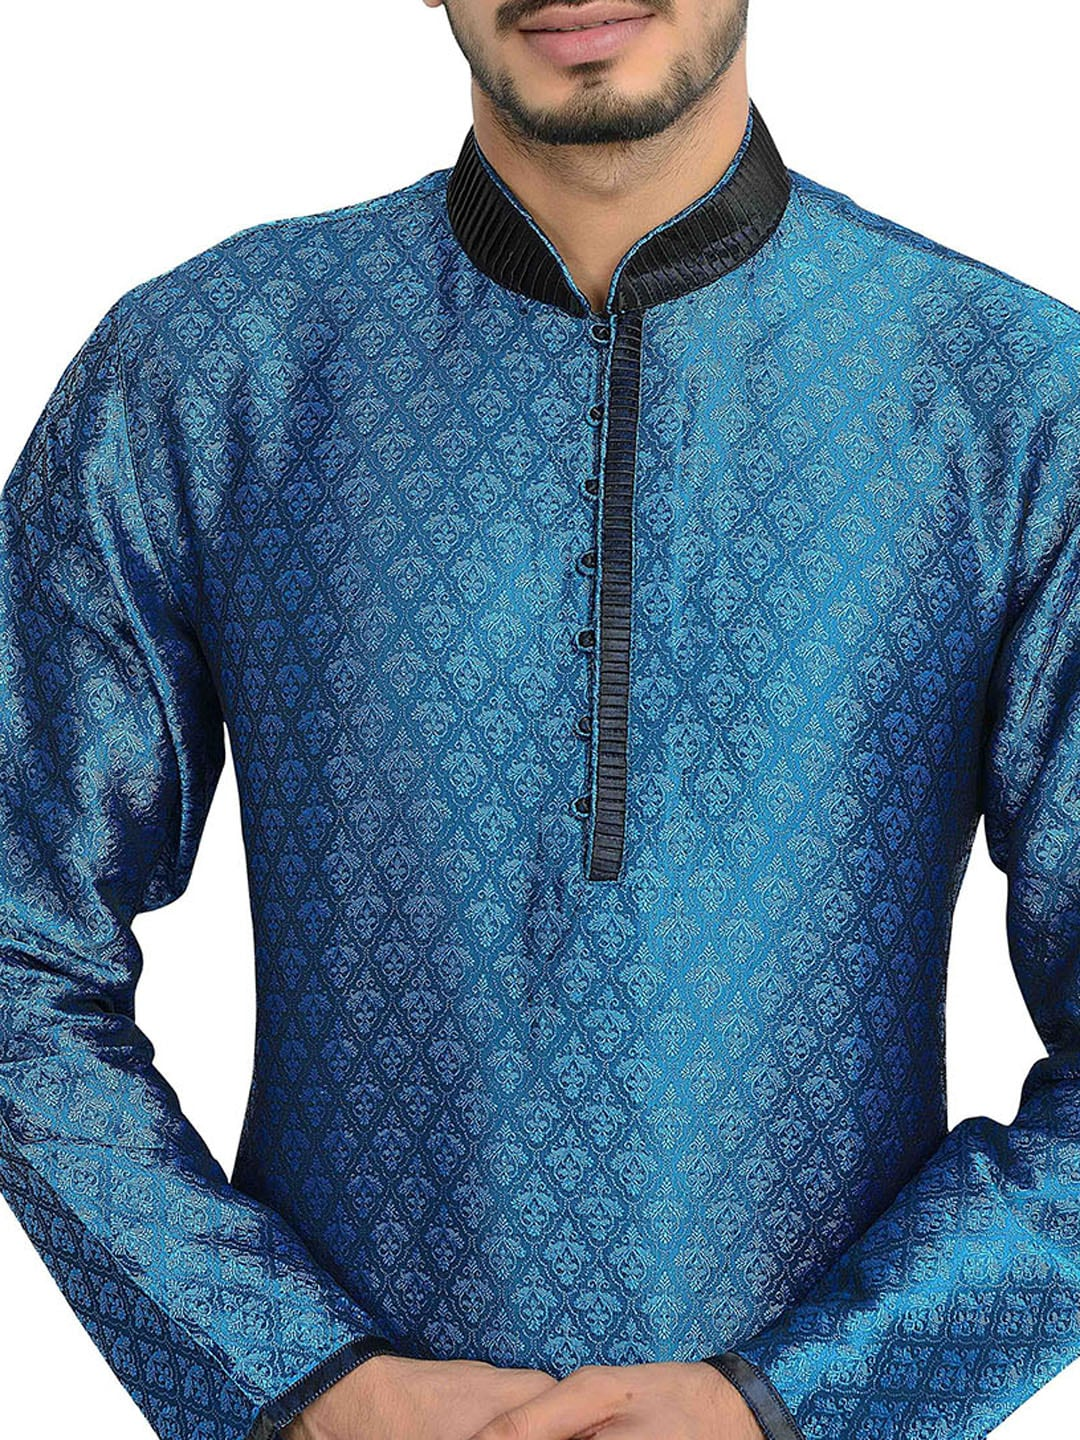 Ethnic Wear for Men - Buy Gent\'s Ethnic Wear Online in India